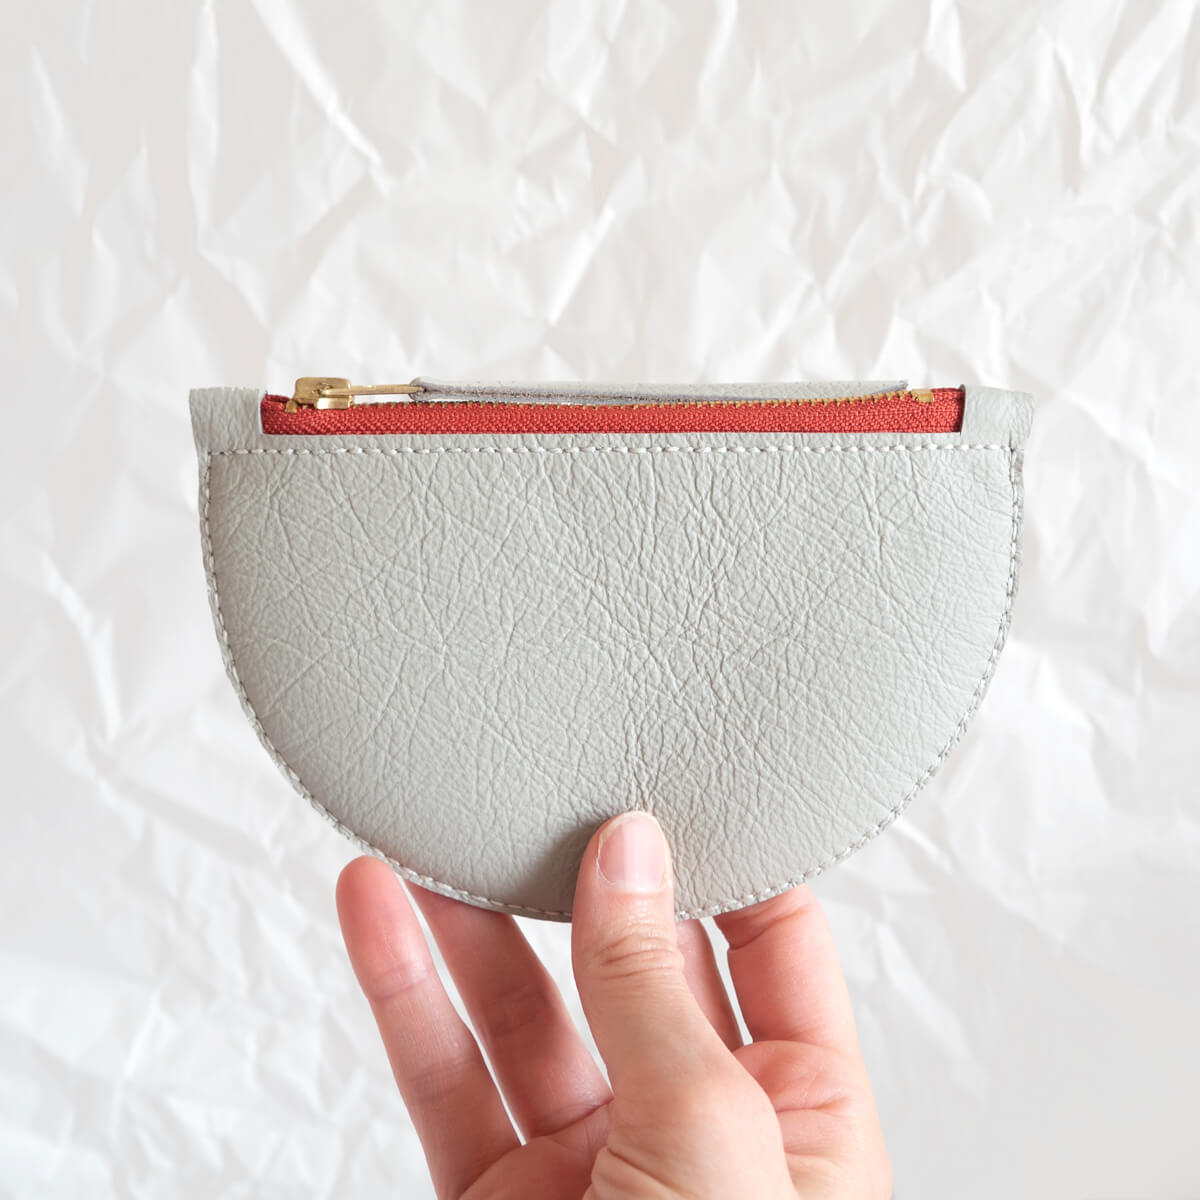 Mimi Coin Purse, Cream and Orange | Curious Makers